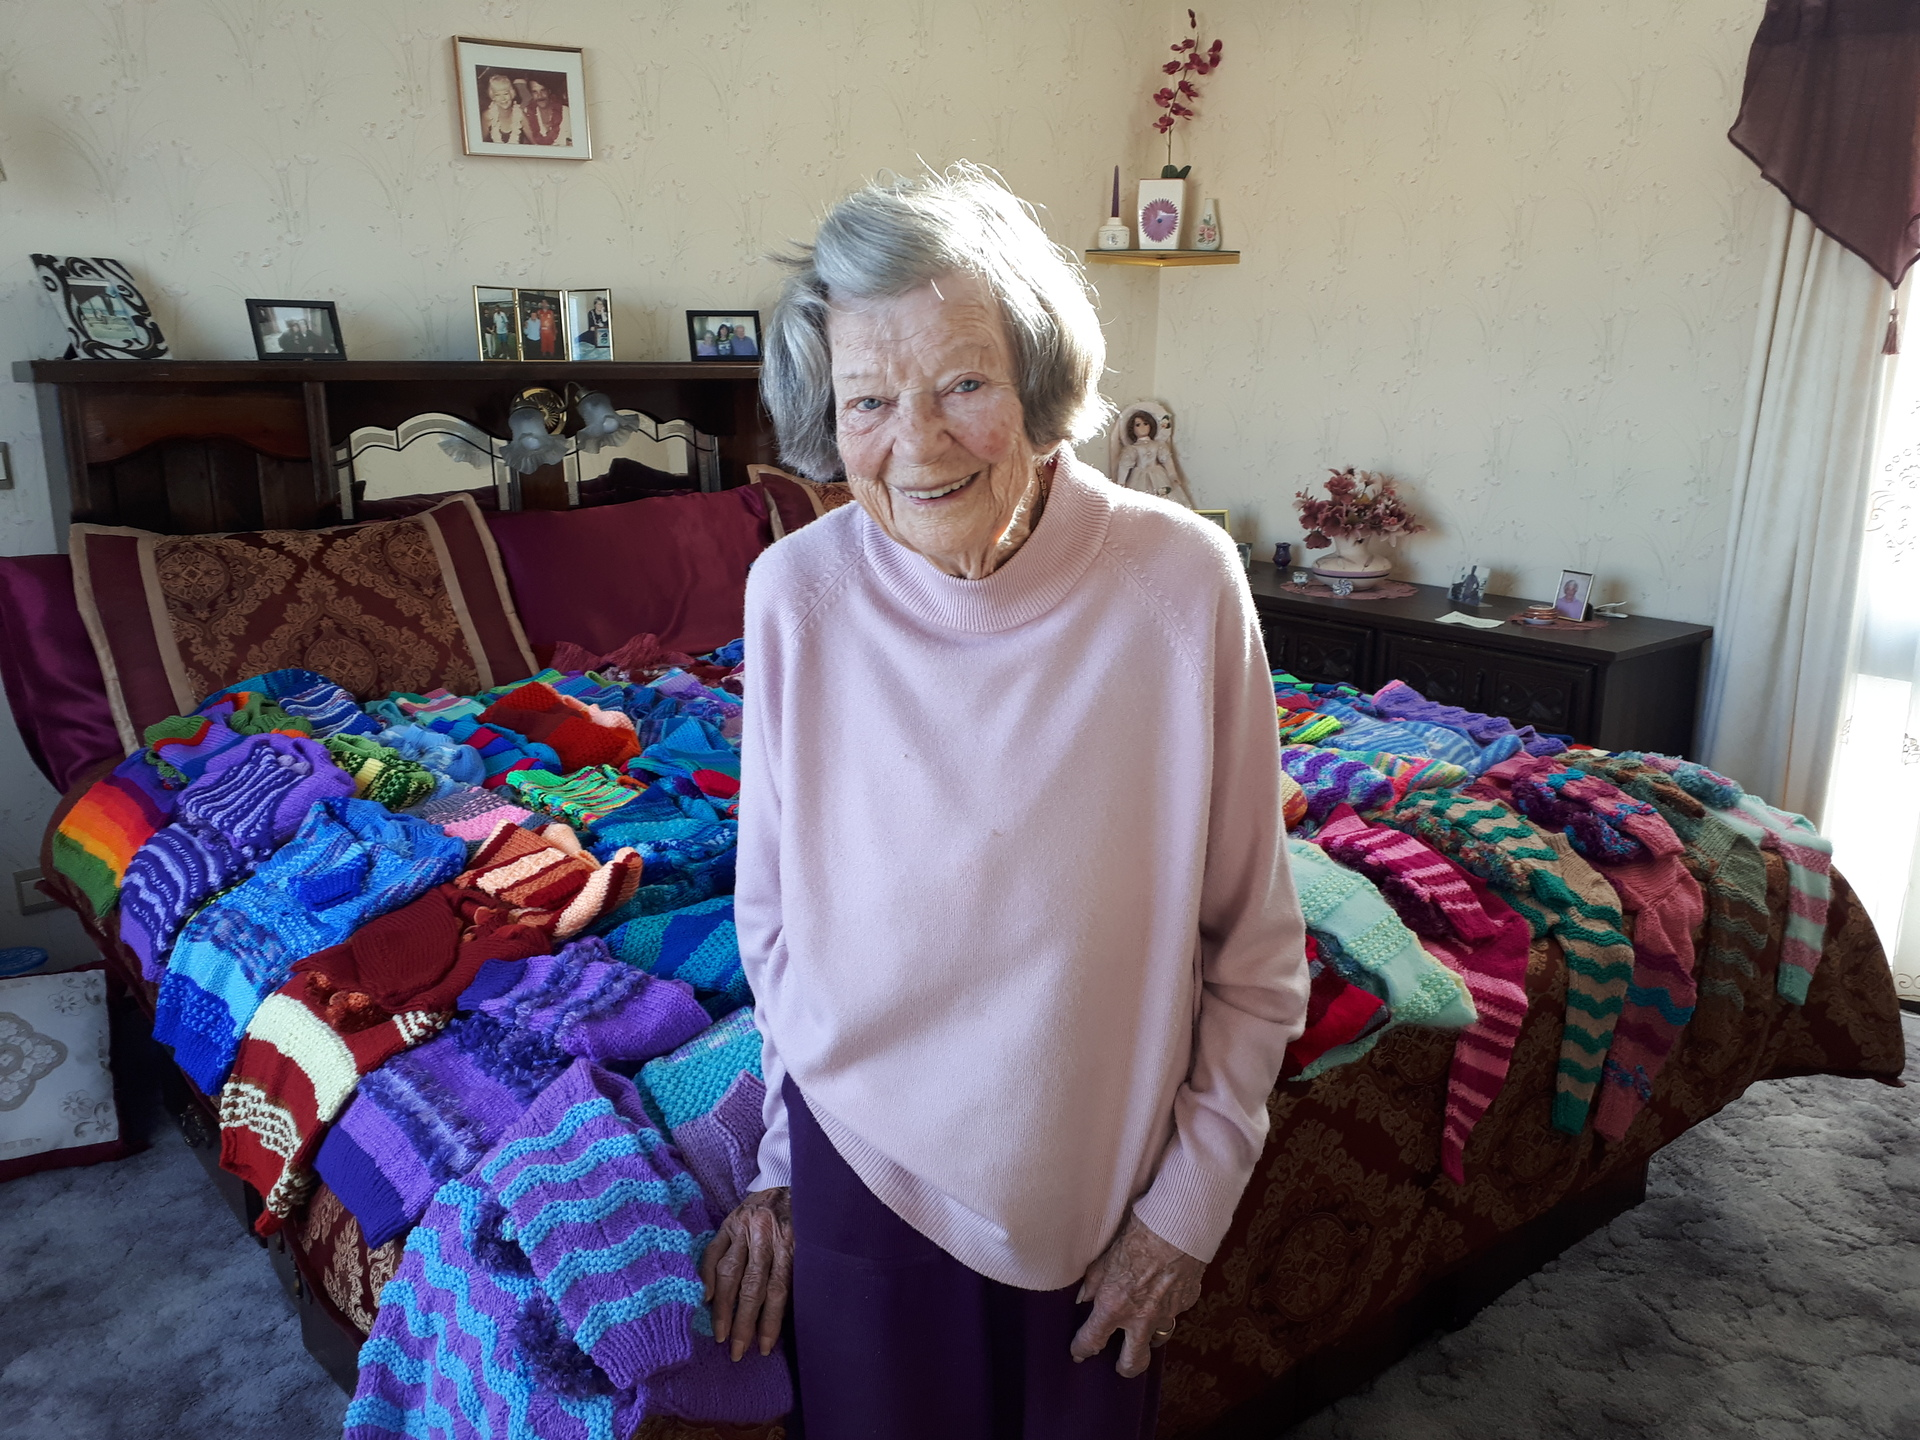 94-year-old Whanganui woman knits 68 sweaters for orphans